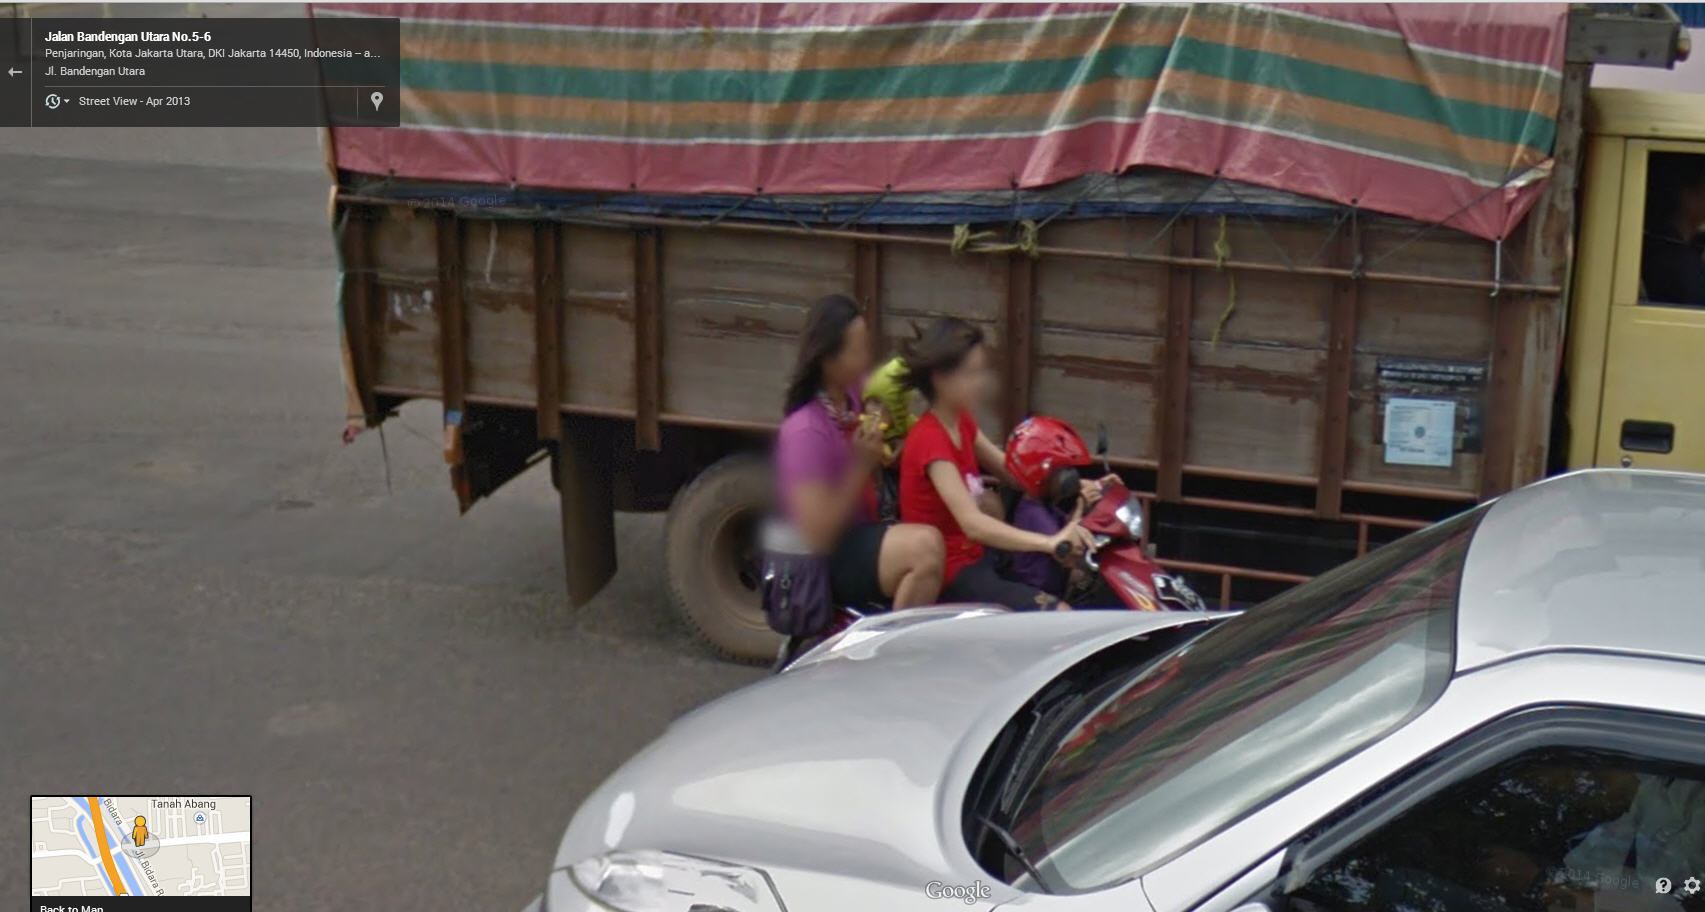 Google Street View Indonesia Now Live!